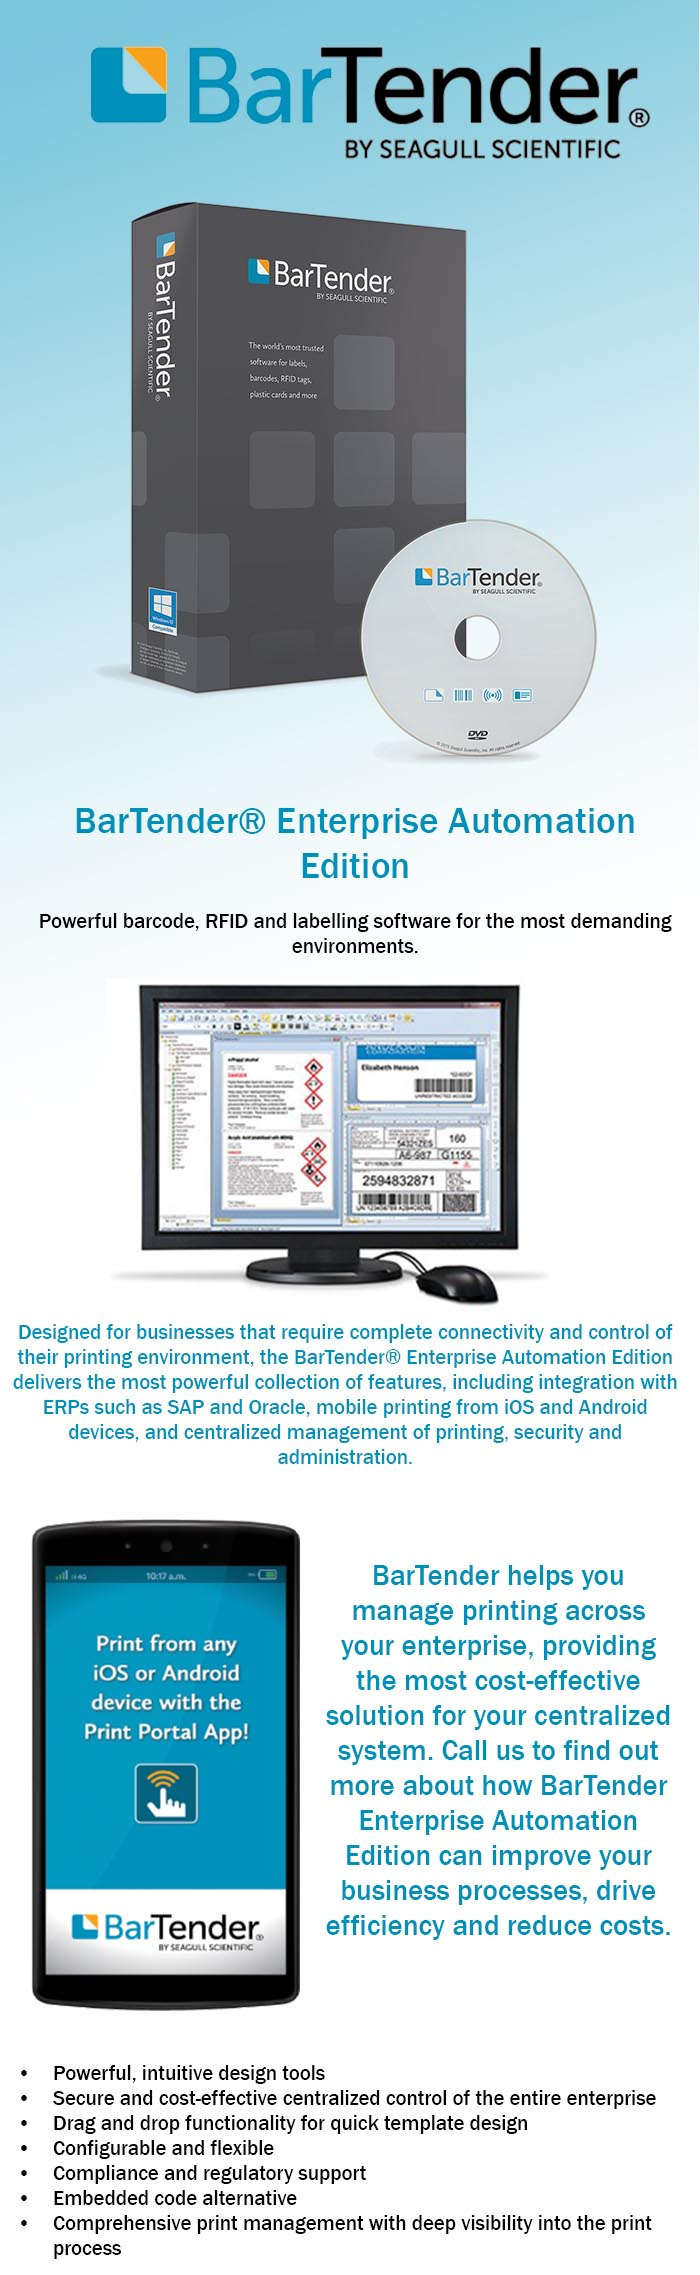 The BarTender 2016 Enterprise Automation Edition Software